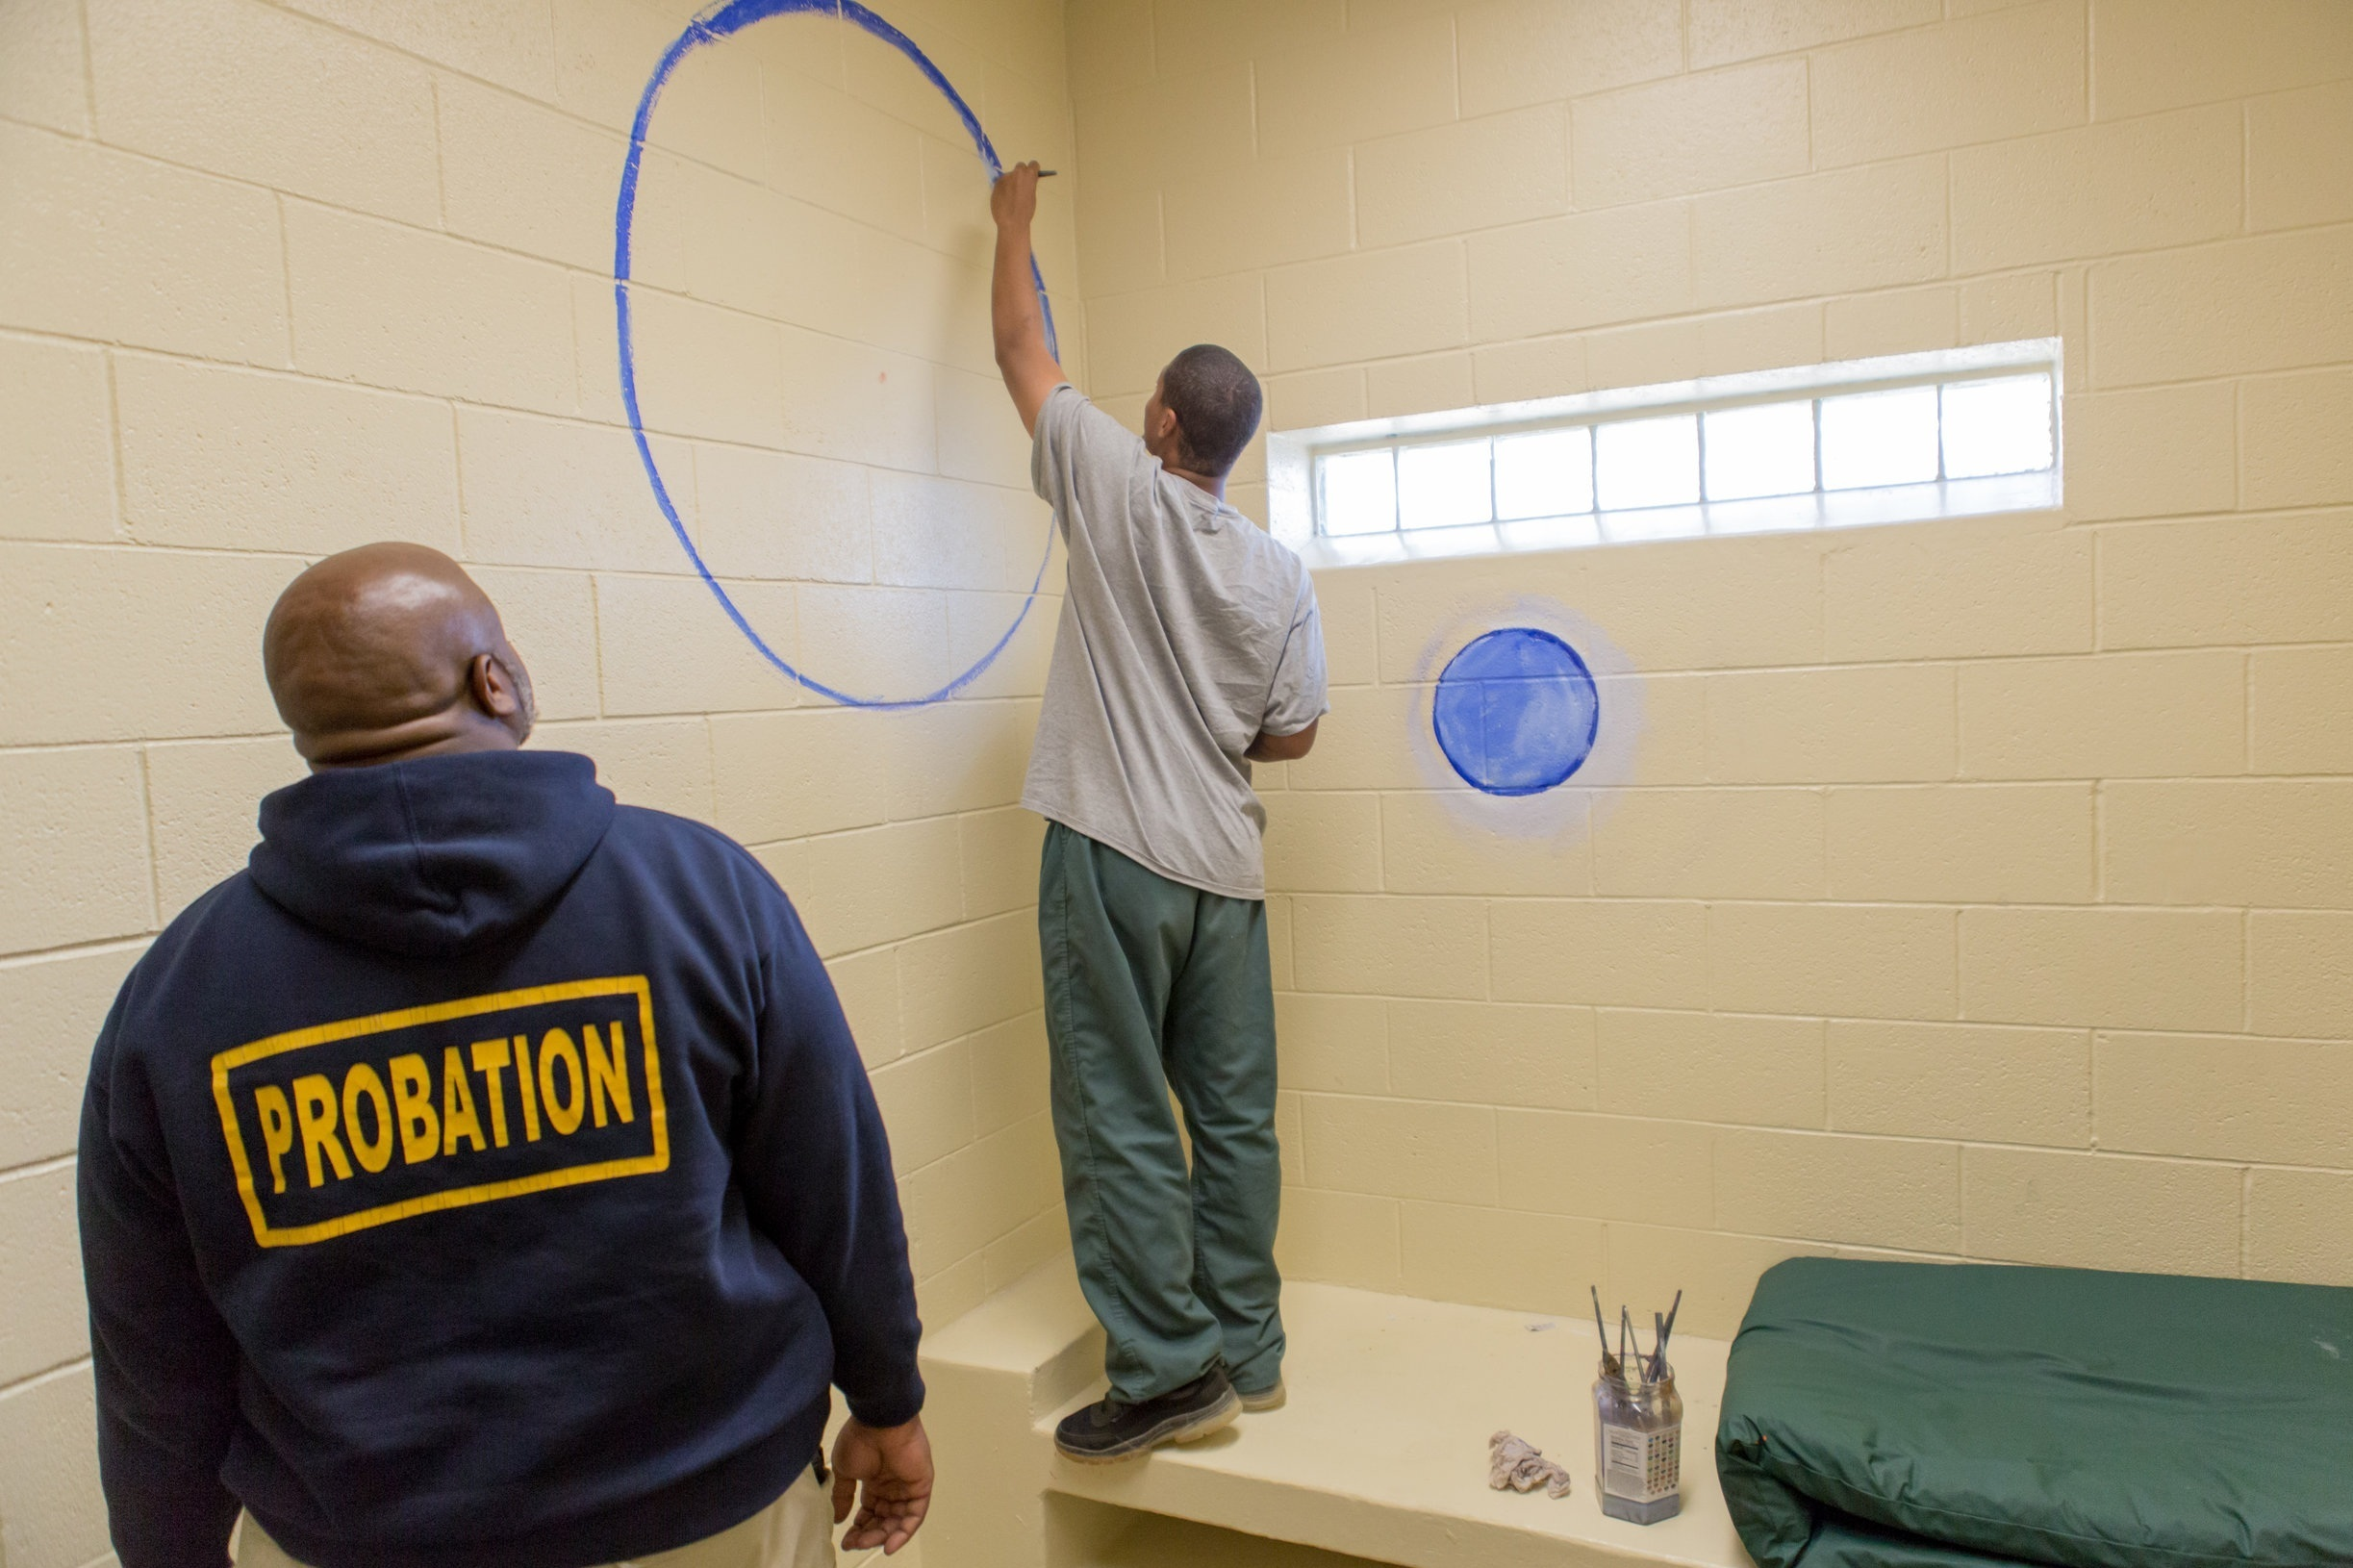 Student transforms a solitary cell into a mediation room while Probation looks on. And after completion.  Photo Credit: Cam Sanders